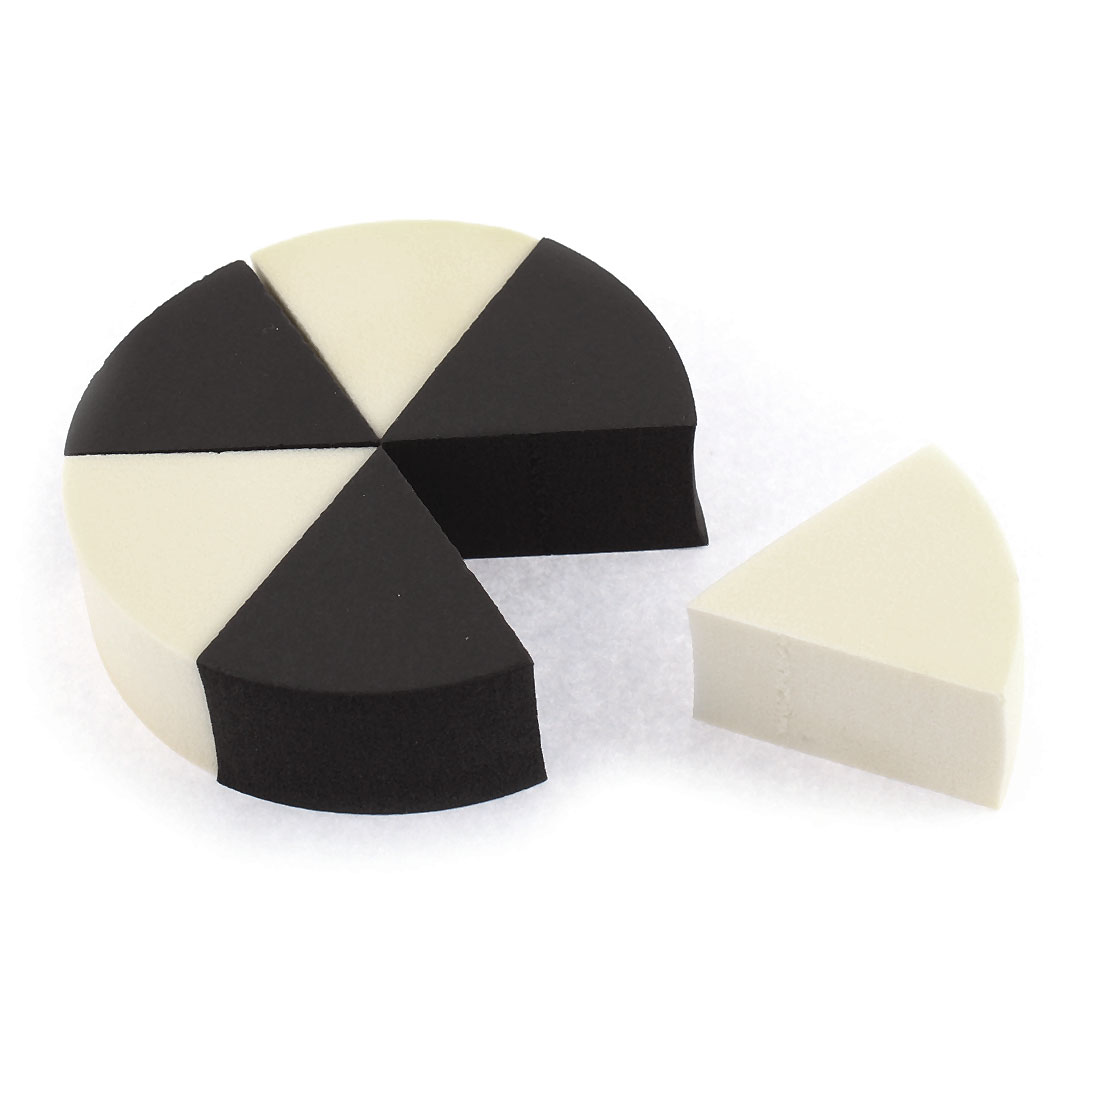 Lady Face Cleansing Washing Sponge Makeup Powder Puff Black Beige 6pcs